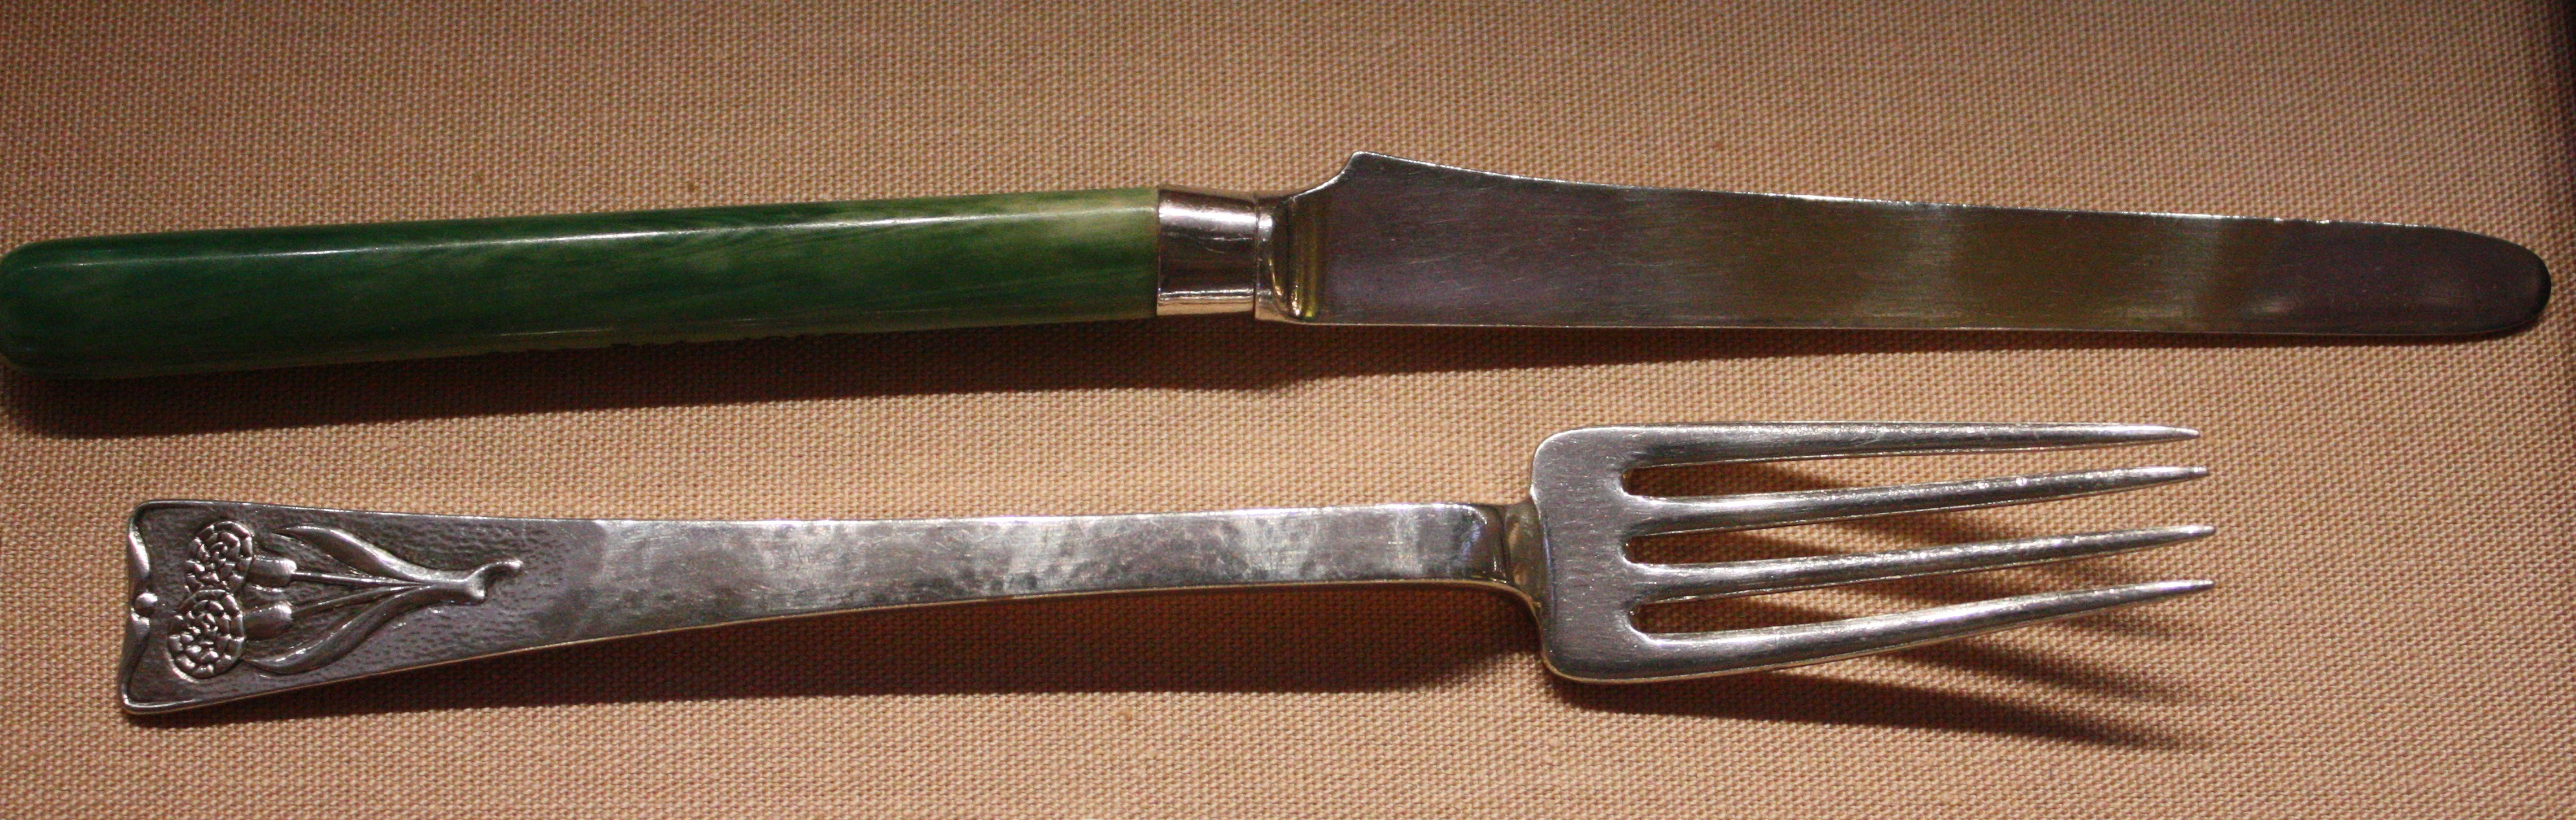 File BLW Fruit knife and fork on arts and crafts movement